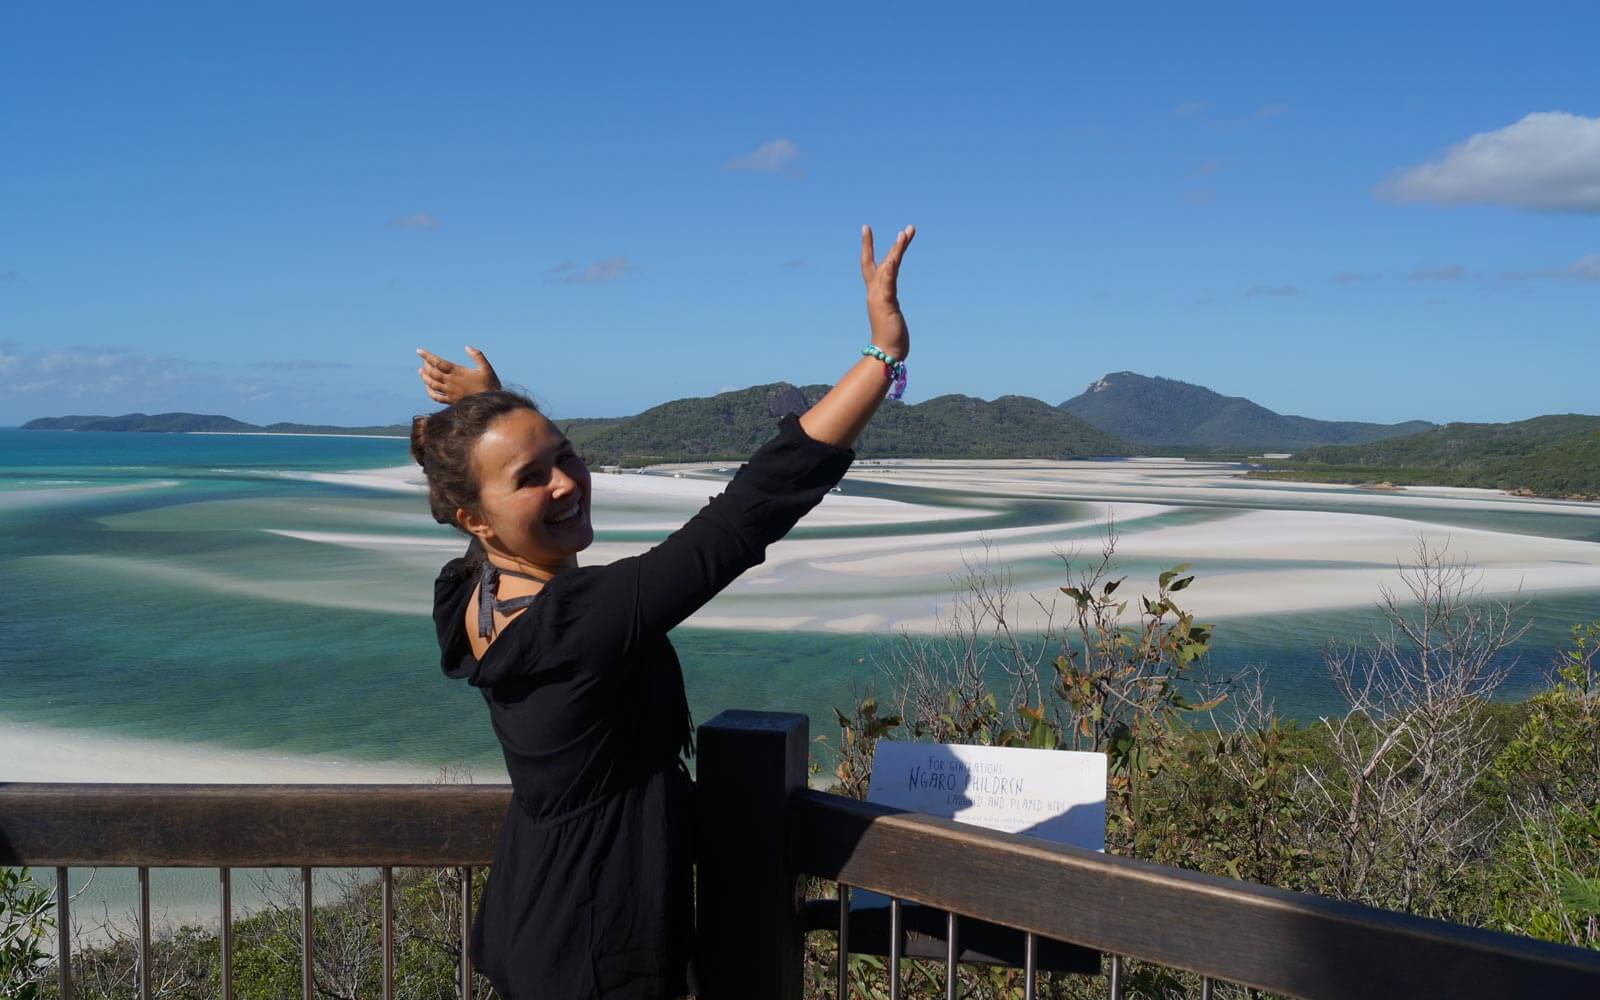 Luisa auf den Whitsunday Islands in Australien